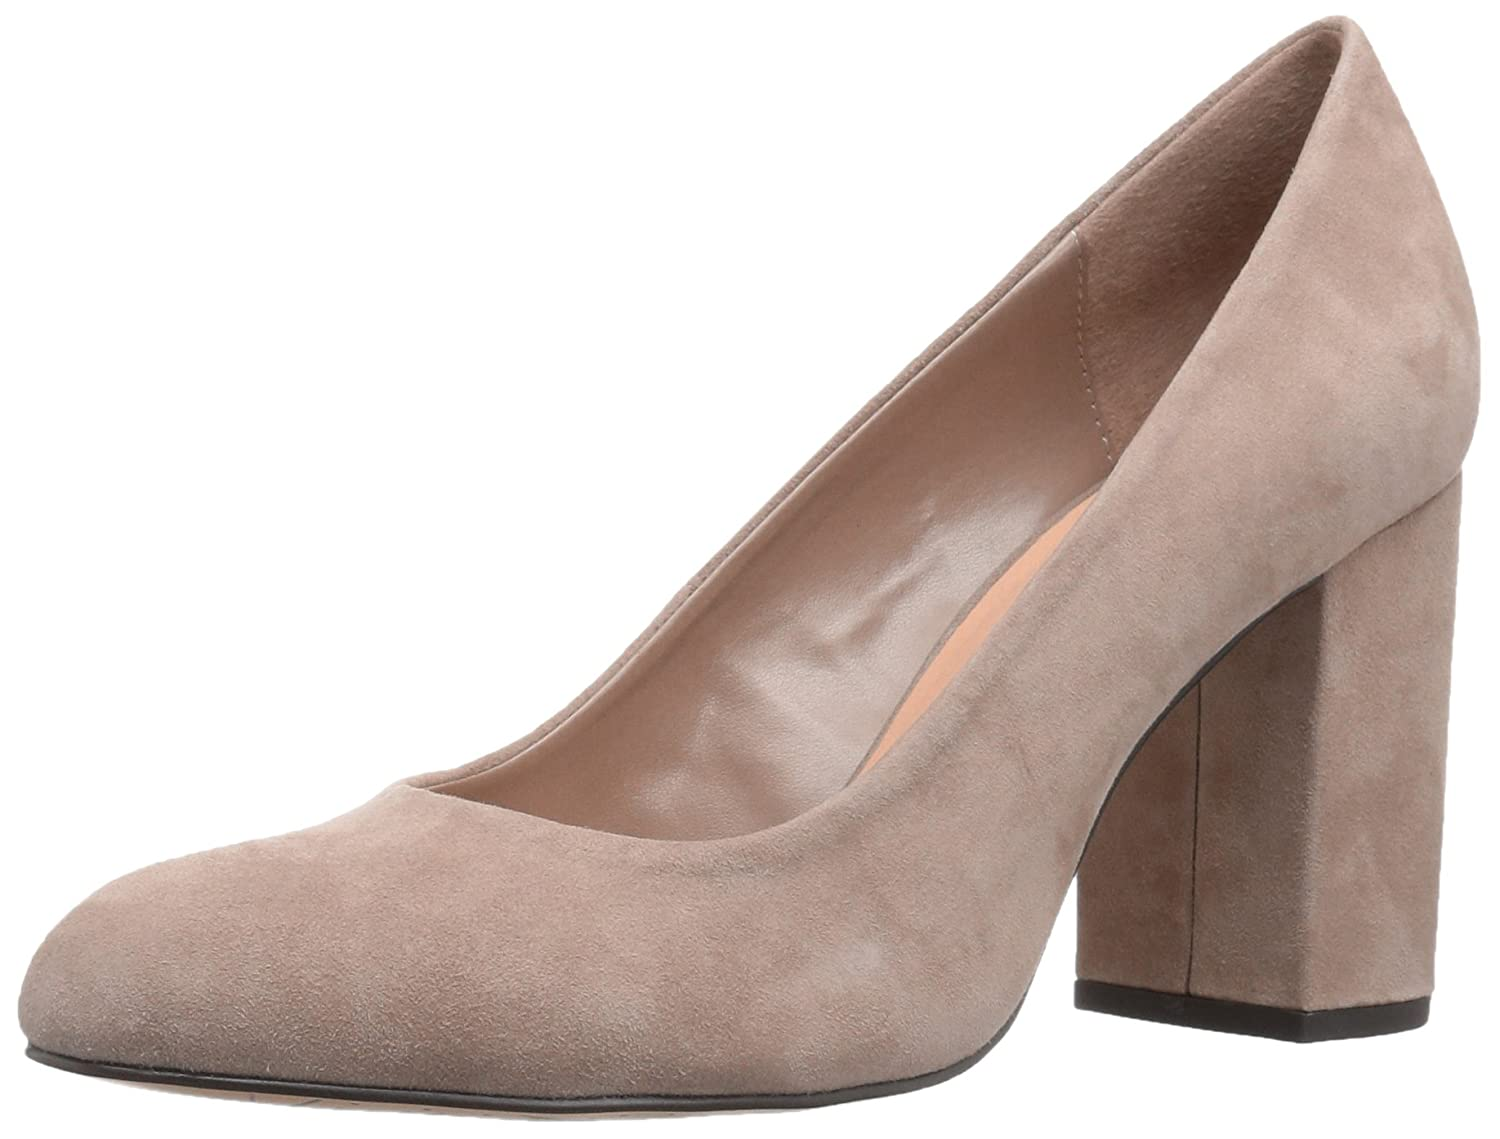 Bella Vita Women's Nara Dress Pump B01ED2RI5U 6.5 E US|Almond Kid Suede